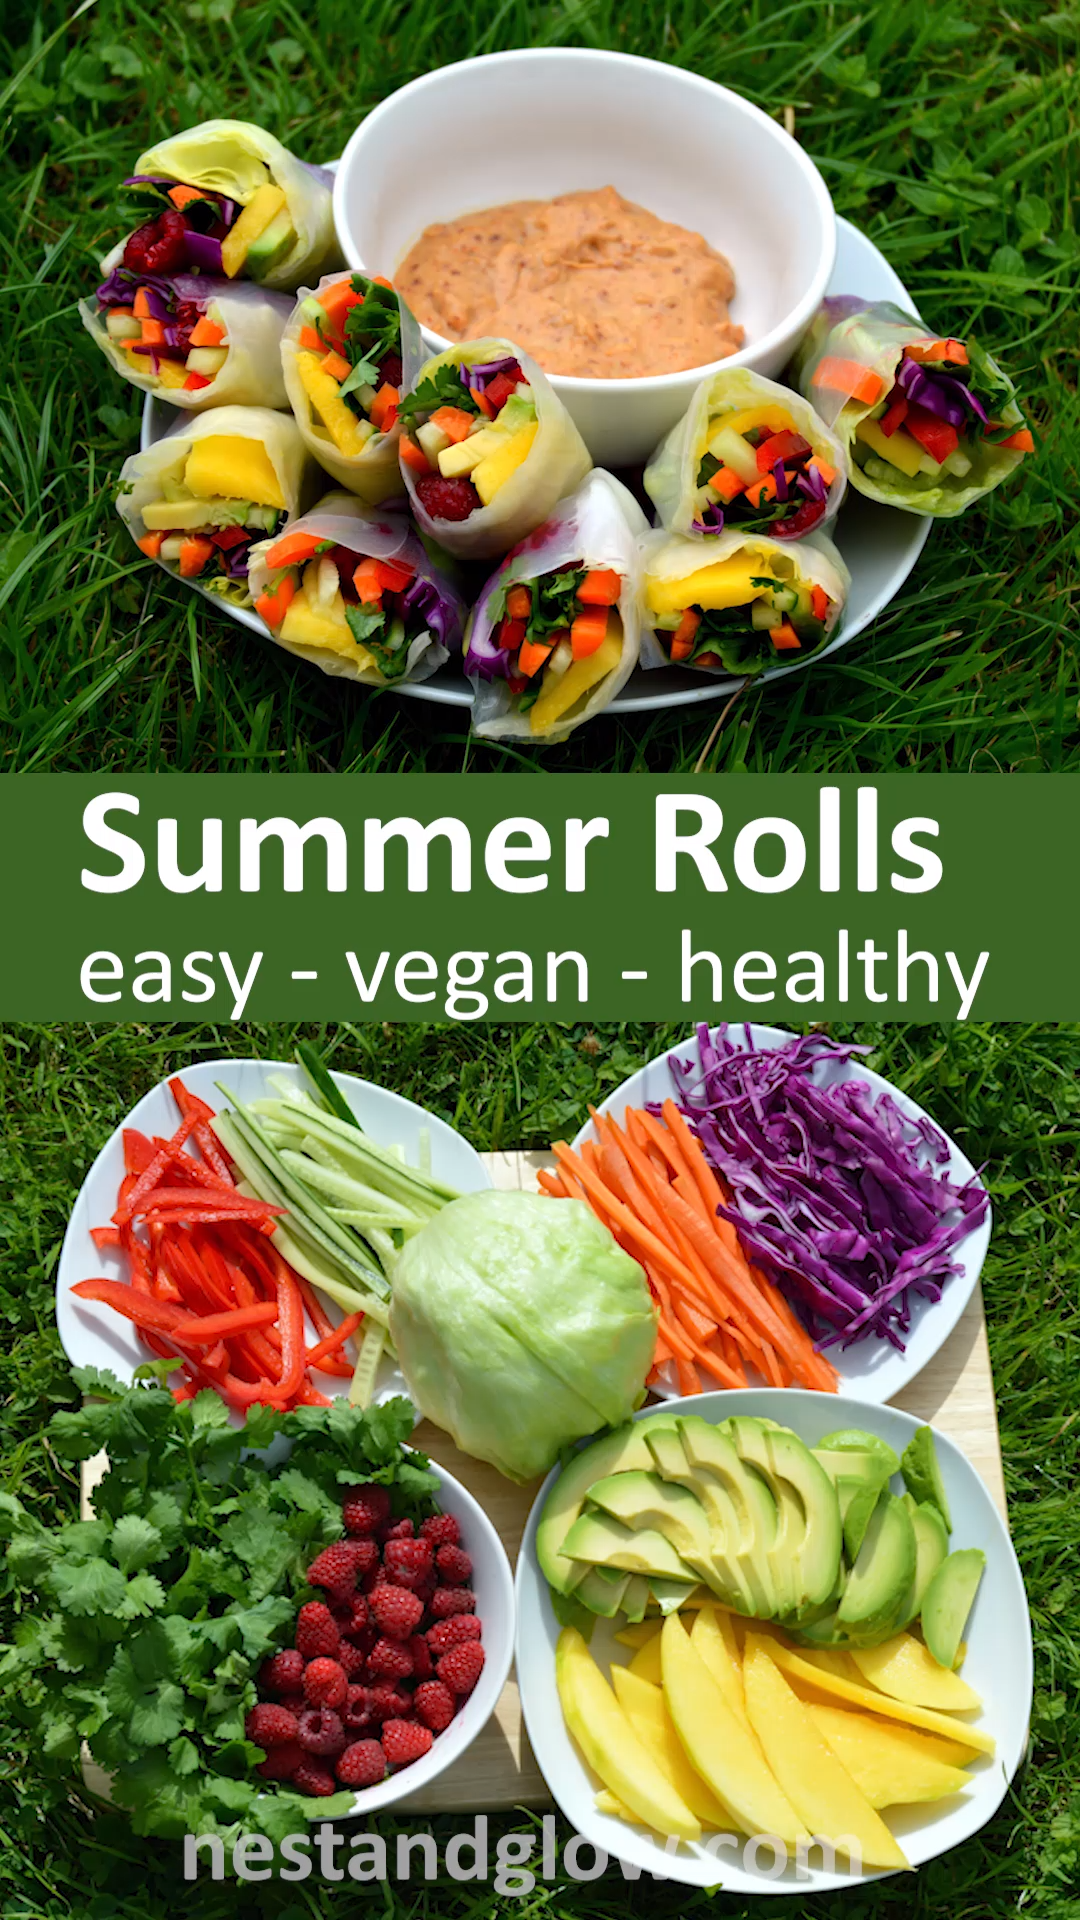 Quick and easy recipe that's much easier to make than it looks. Vegan and full of goodness #veganrecipe #healthyrecipe #healthyfood #Easy Recipes vegan Summer Rolls with Spicy Nut Dip